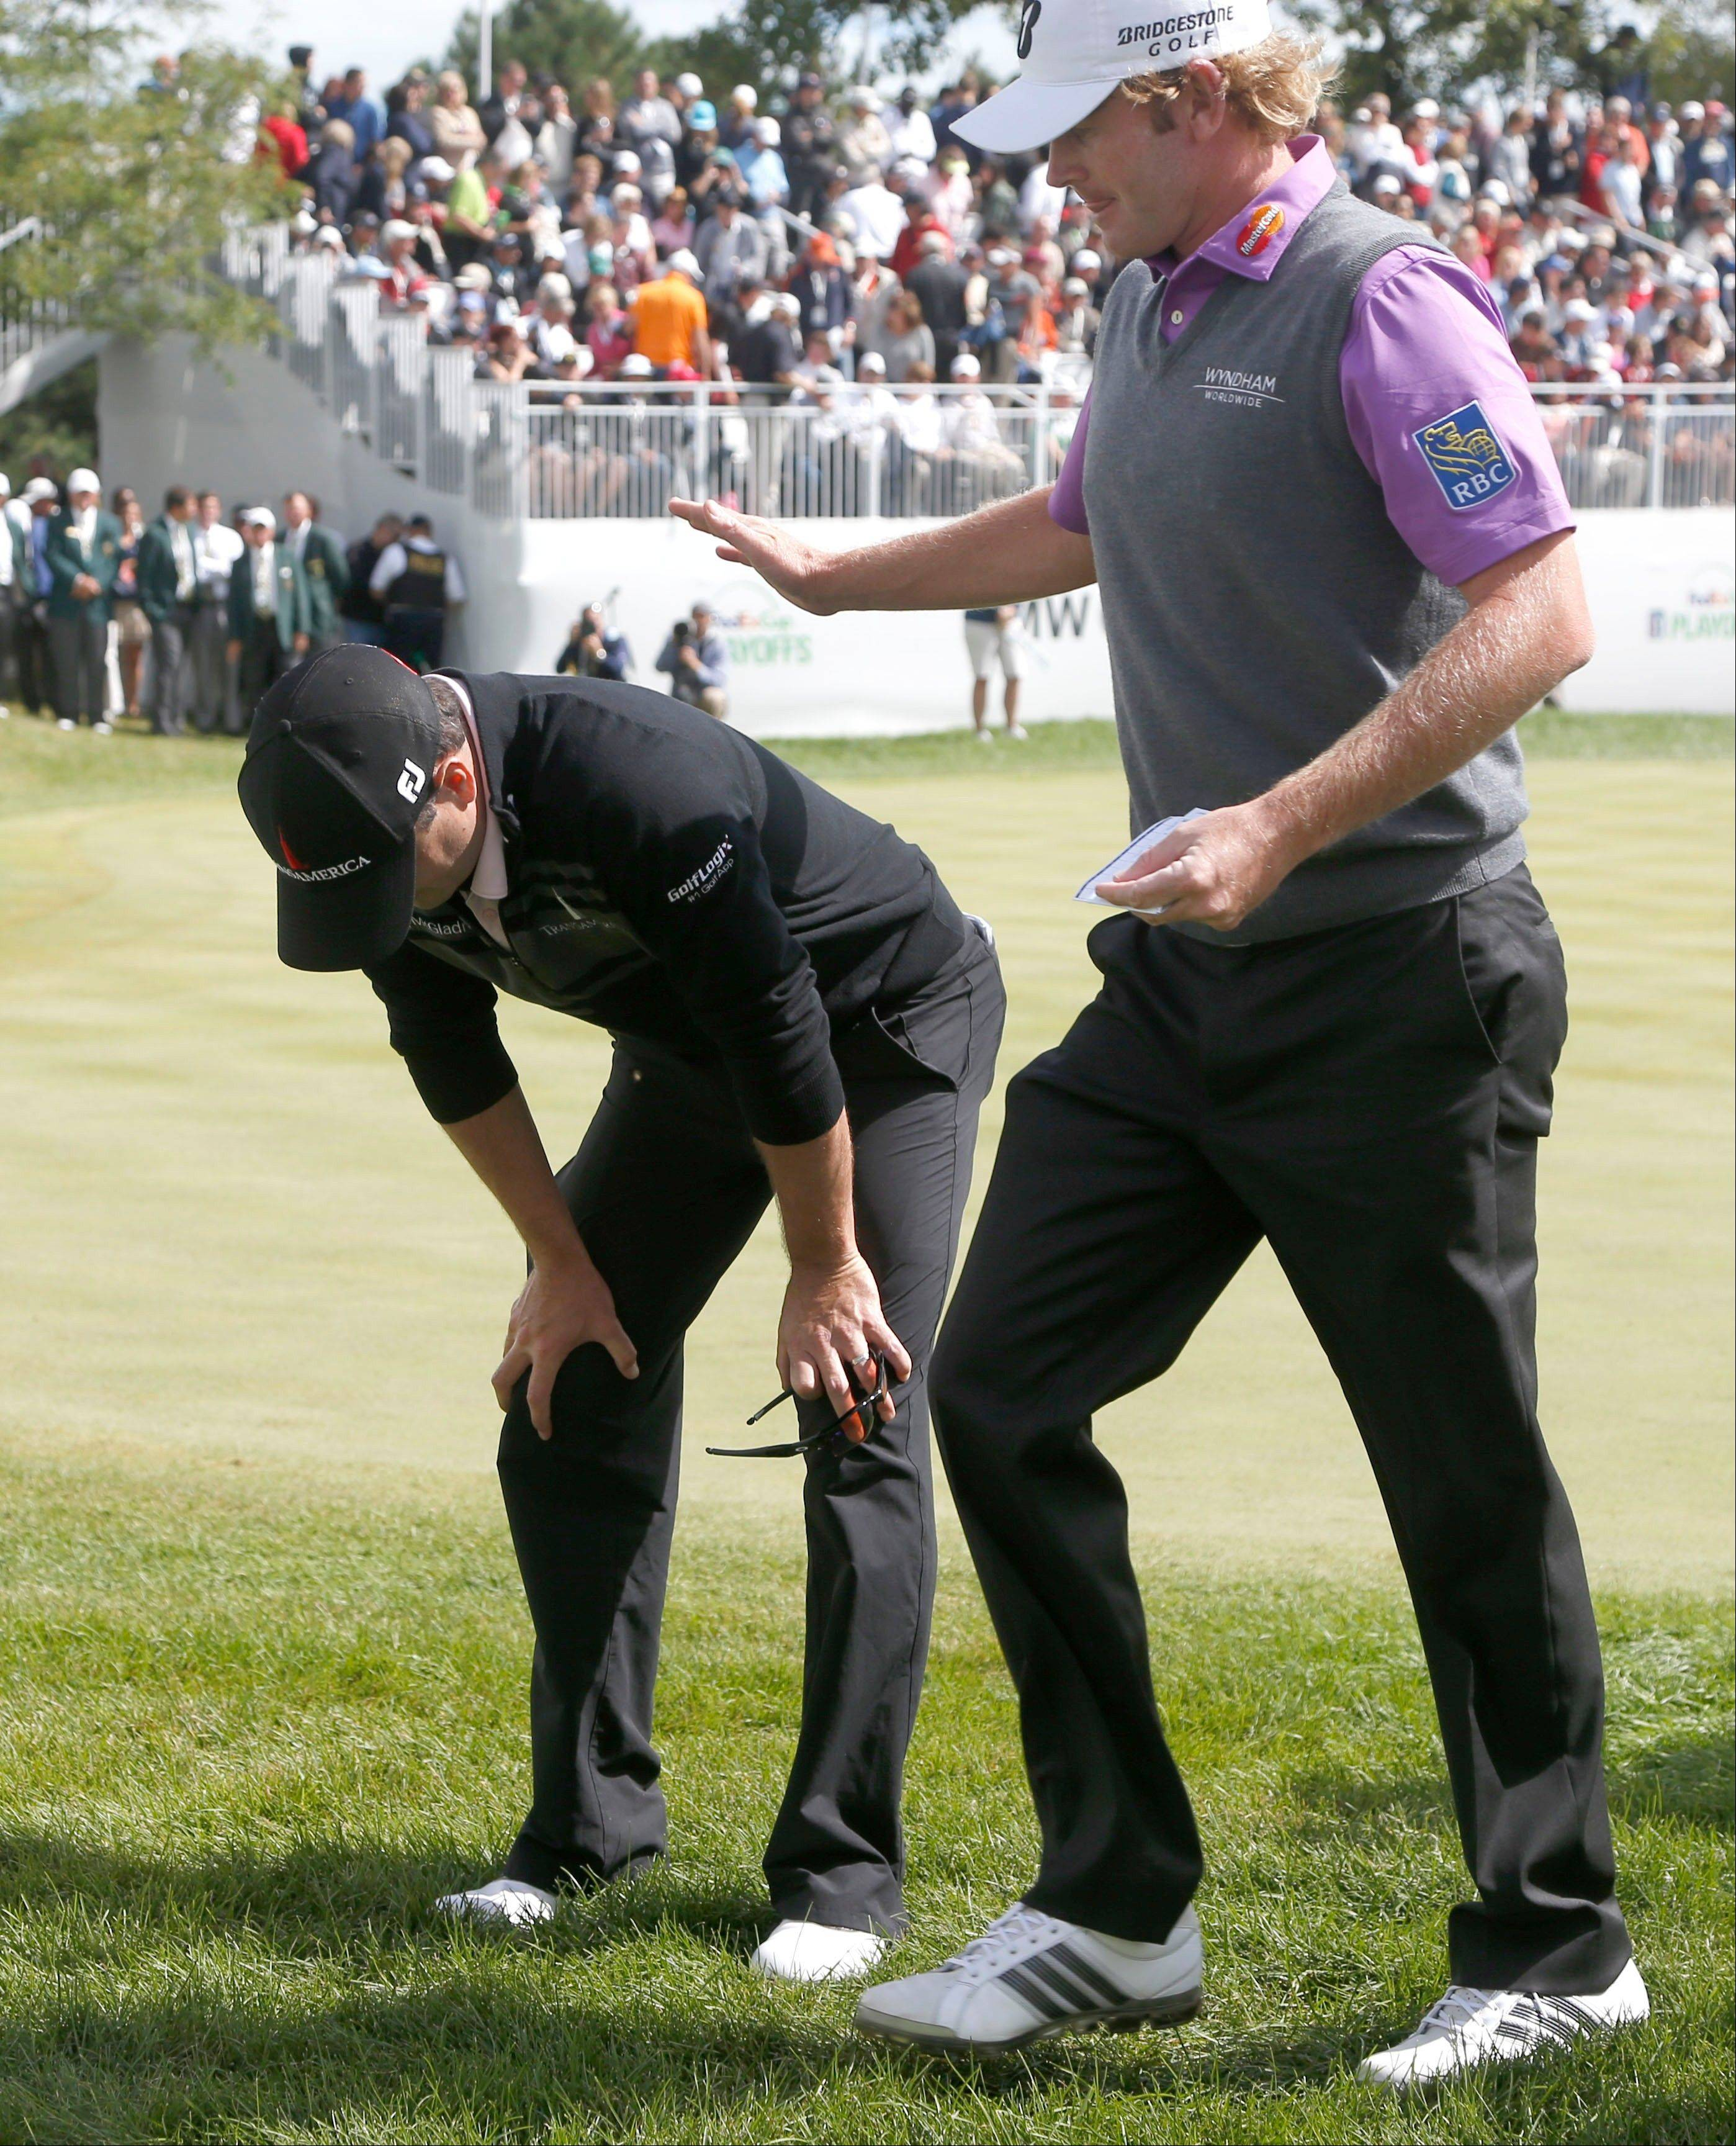 Brandt Snedeker, right, pats Zach Johnson on the back after Johnson won the BMW Championship golf tournament.